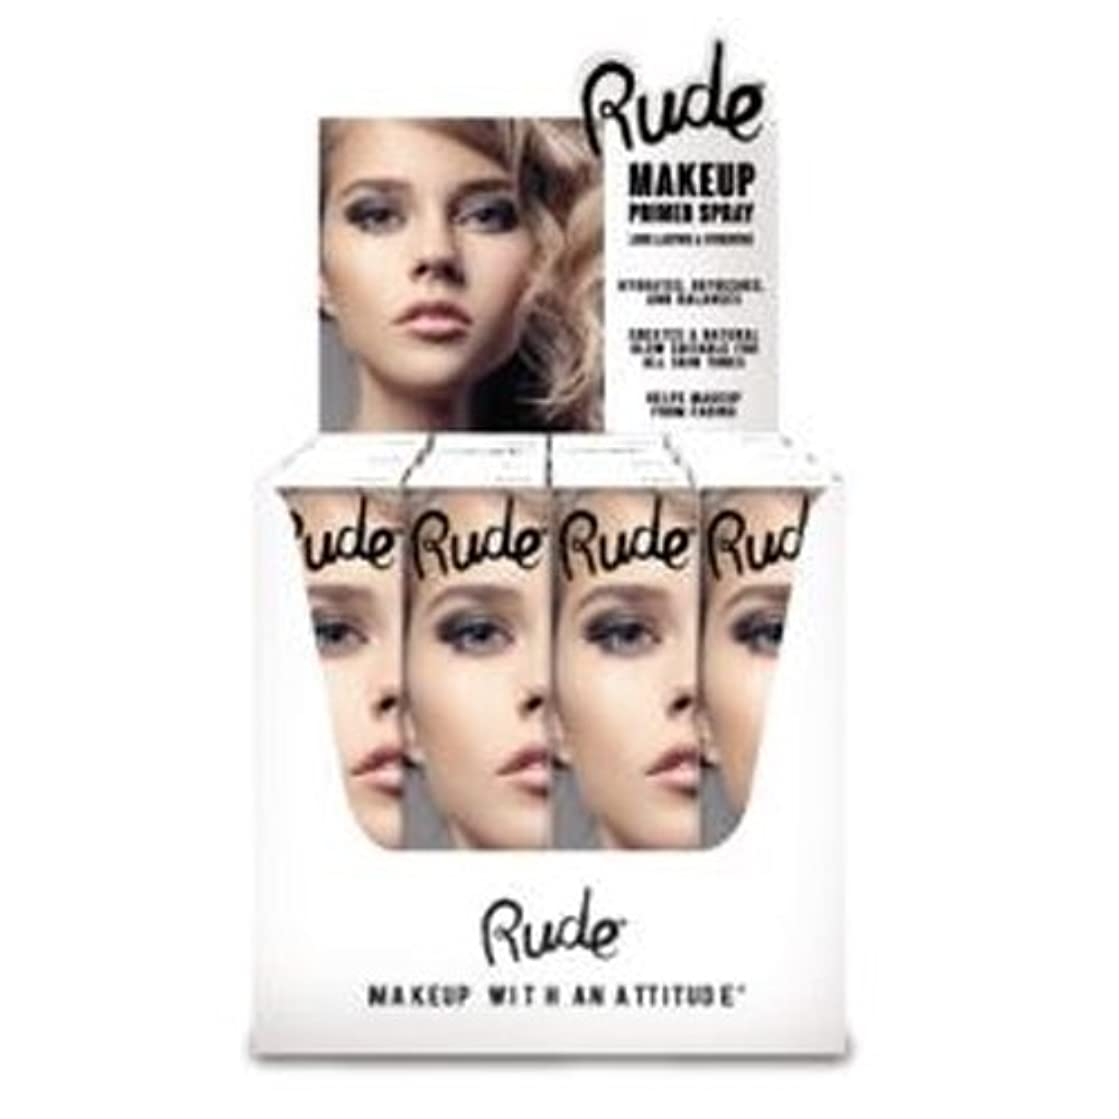 ベルト苦すなわちRUDE Make Up Primer Spray Paper Display Set, 12 Pieces (並行輸入品)